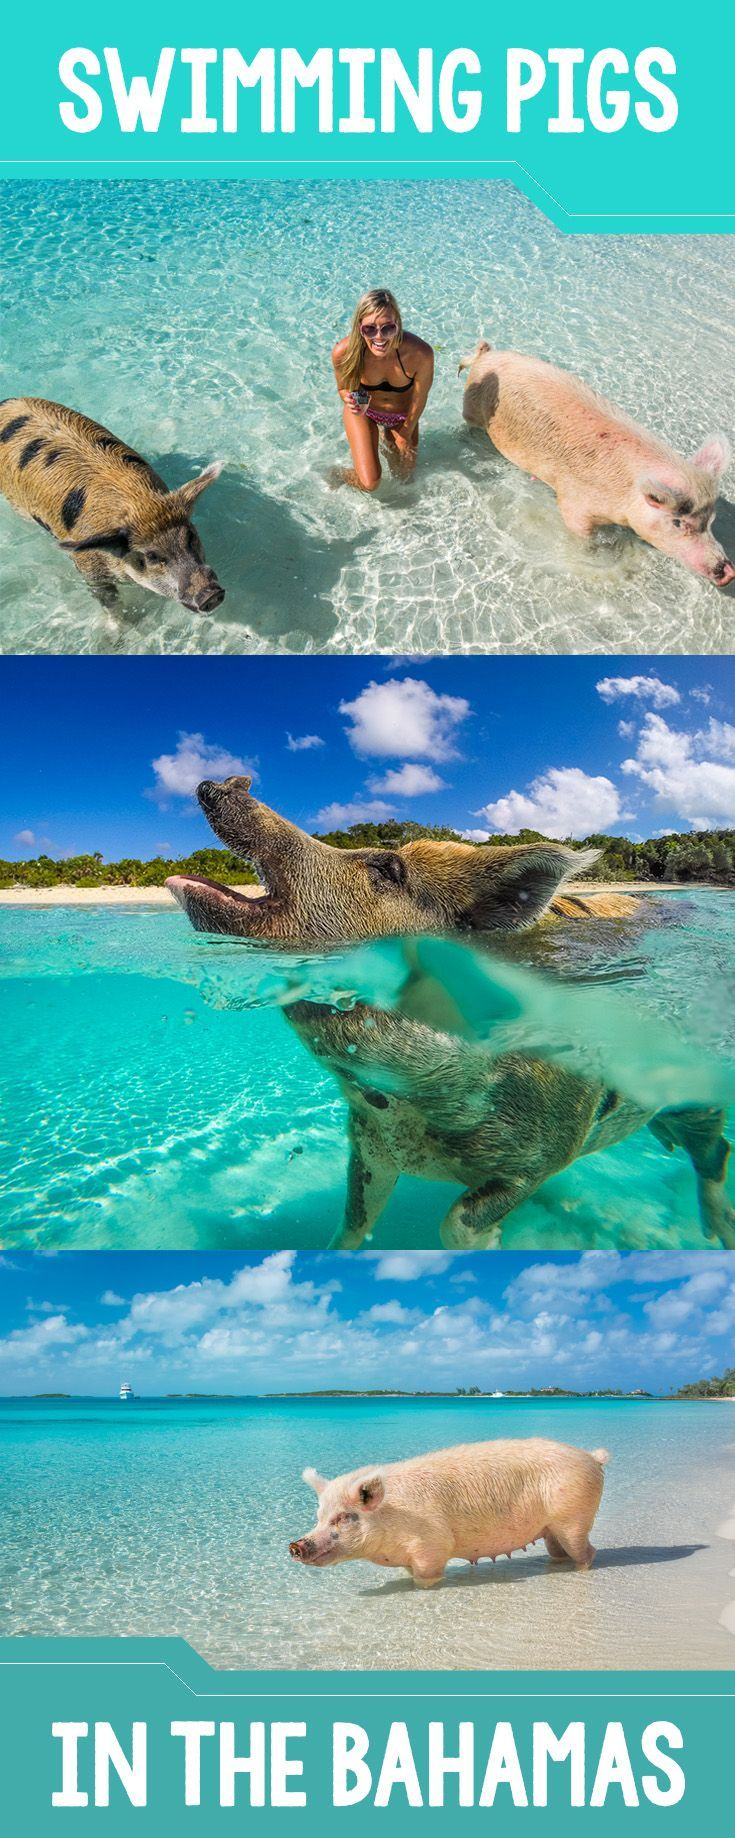 Swimming with the pigs is a bucket list item! These cute little piggies live in the Exuma Cays in the Bahamas. Don't forget a tasty treat for these hungry guys.